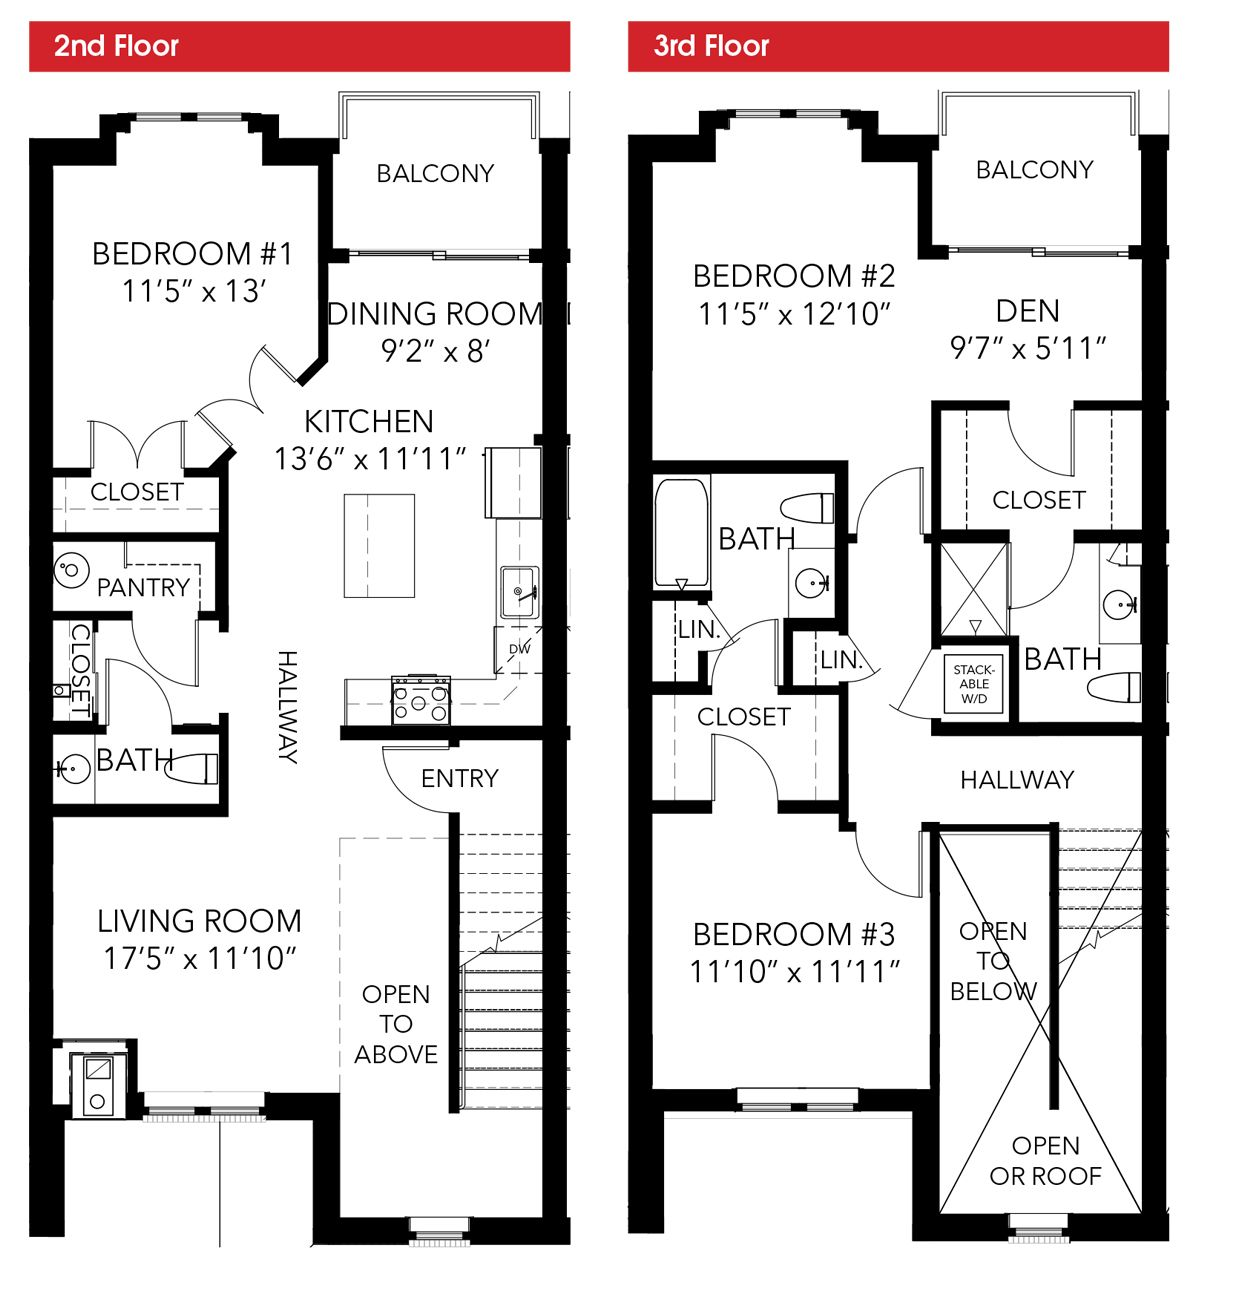 Oakbourne floor plan 3 bedroom 2 story leed certified for 3 story 5 bedroom house plans